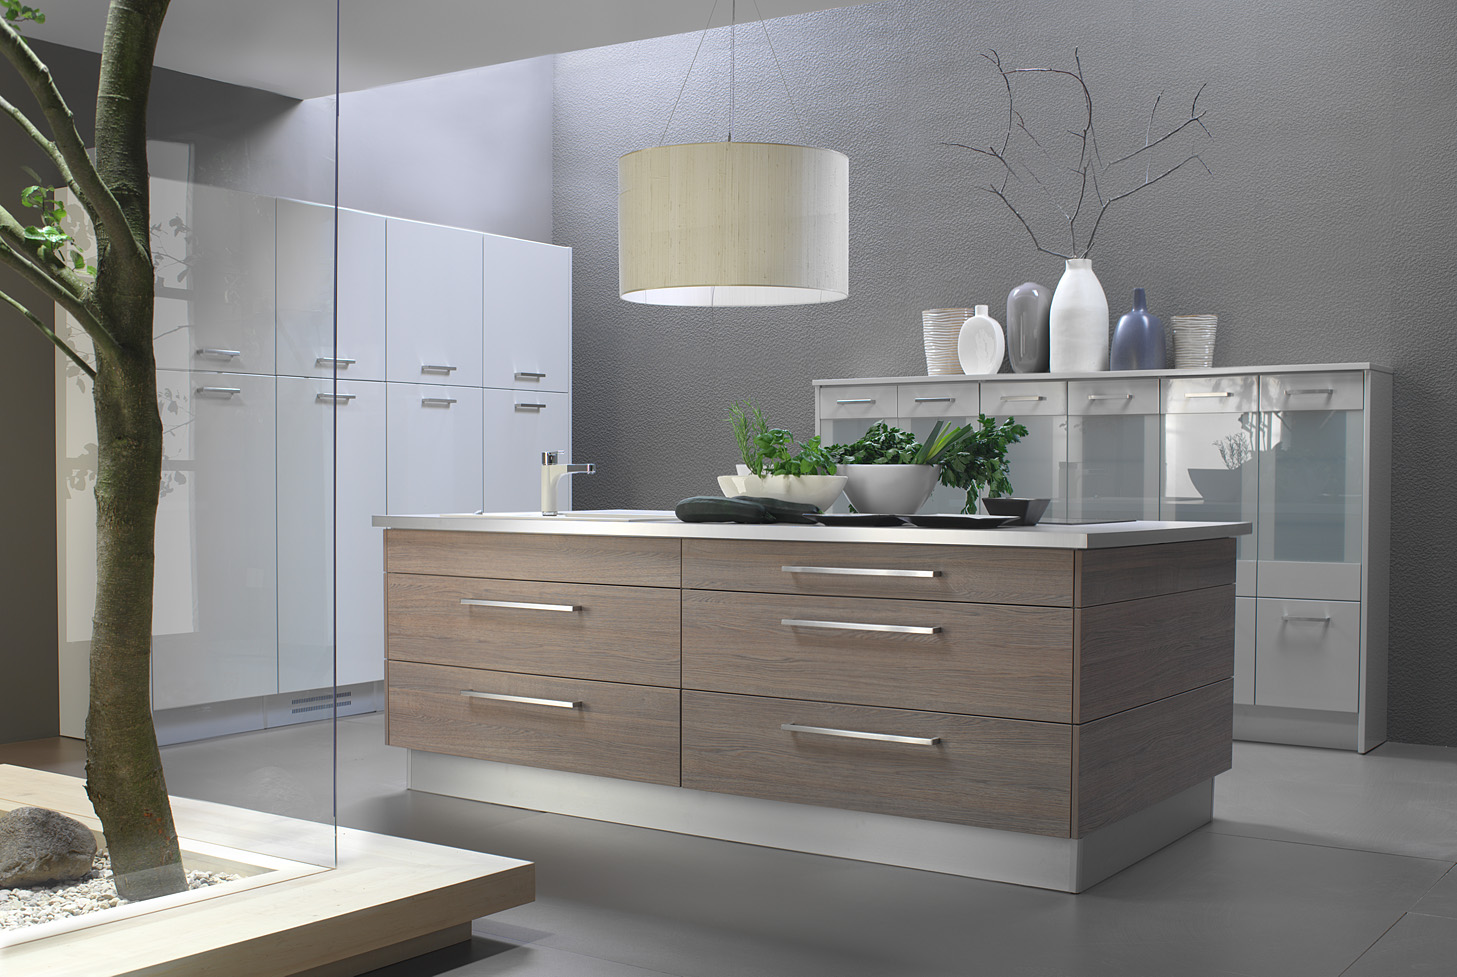 Laminate kitchen cabinets design ideas czytamwwannie 39 s for Cupboard cabinet designs